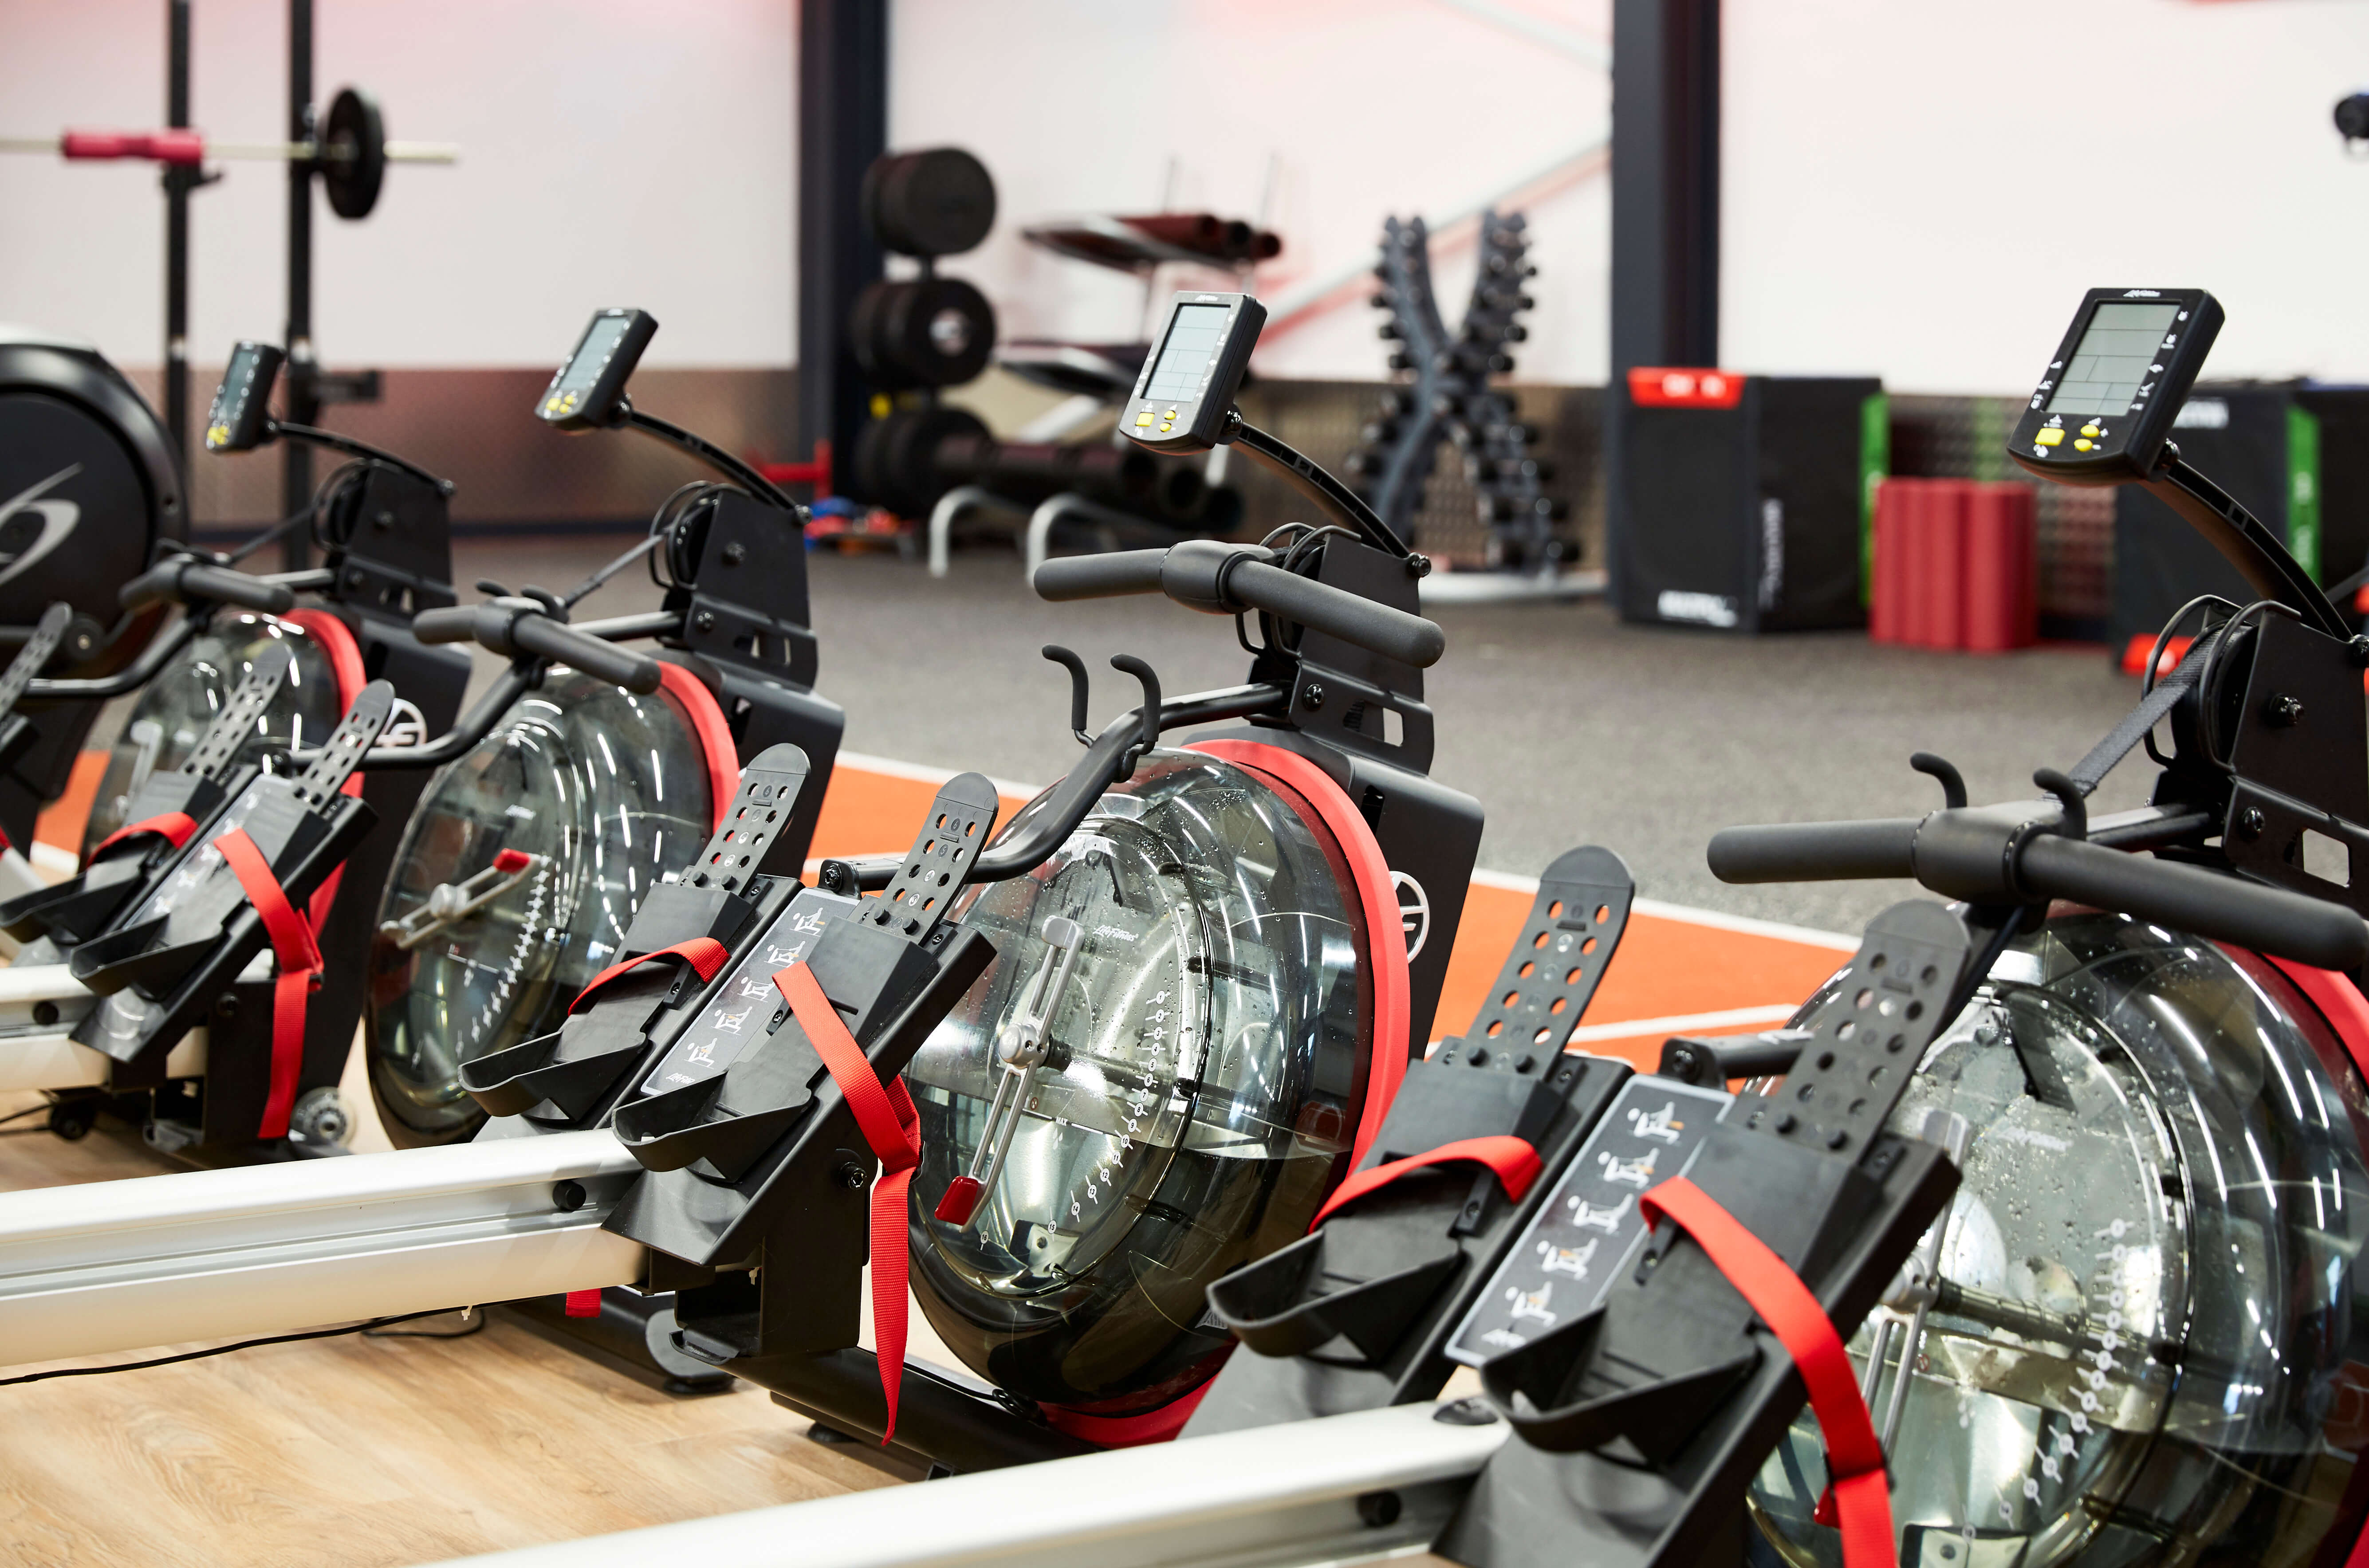 Muti Site Gym Membership In Bournemouth From 26 Stokewood